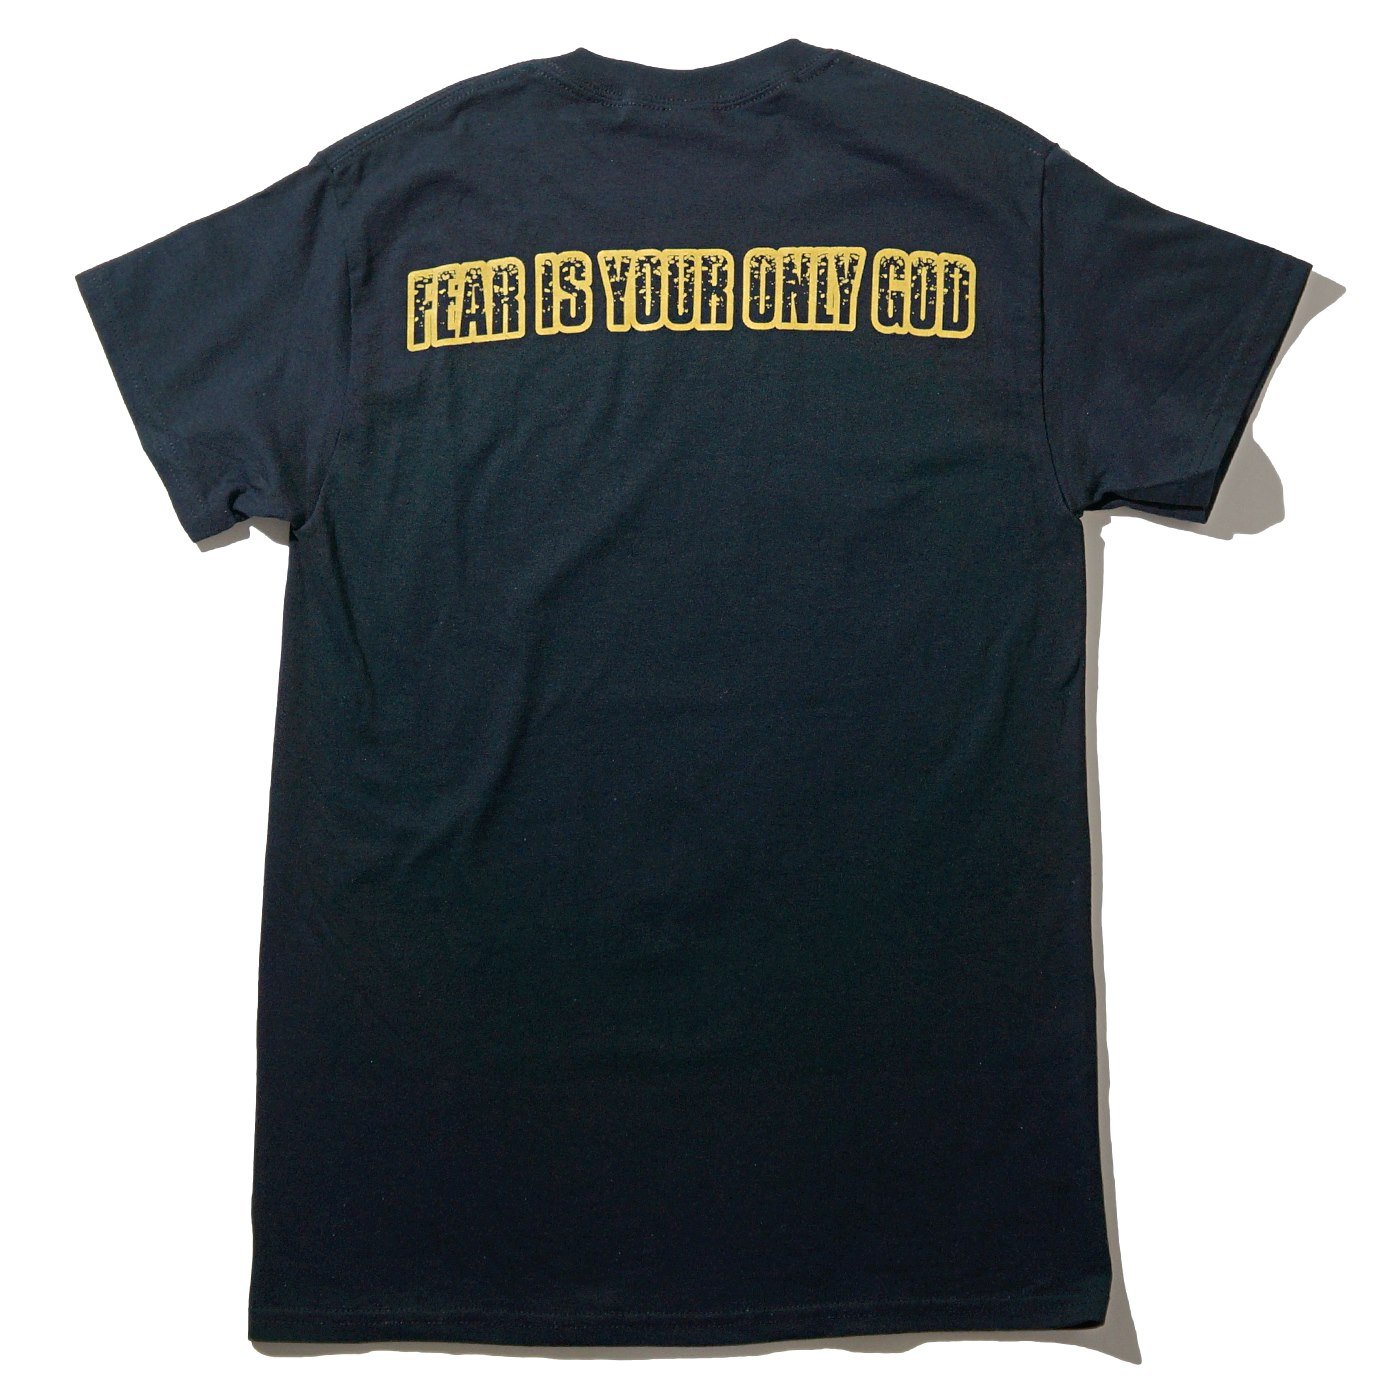 RAGE AGAINST THE MACHINE Tシャツ Fear Is Only God-Black